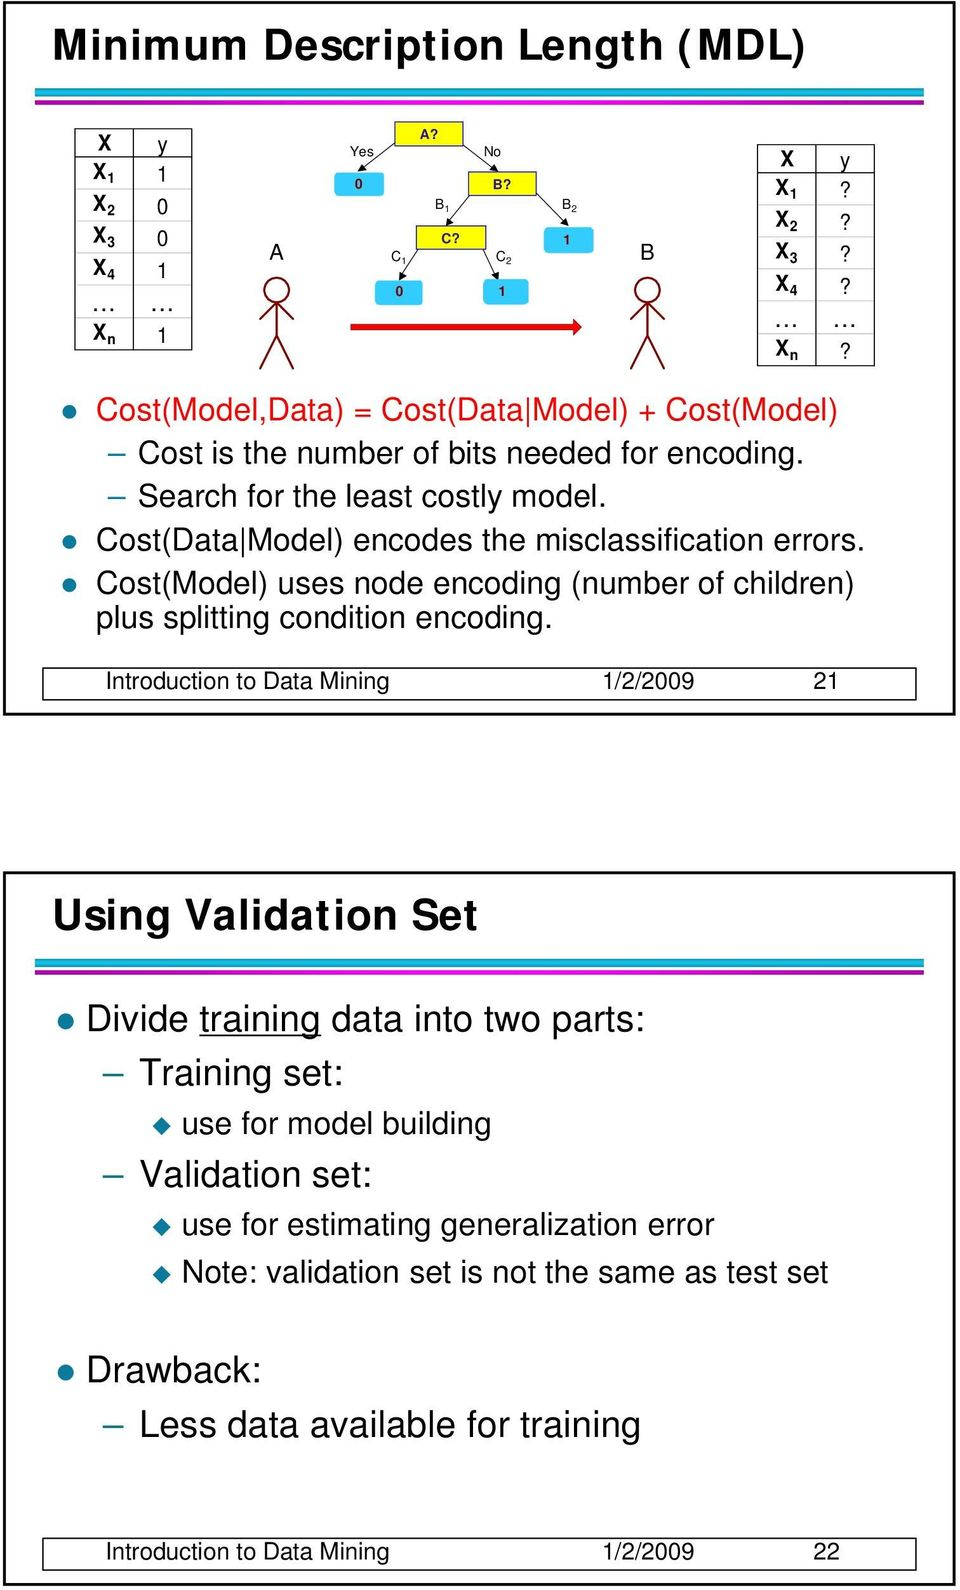 Introduction to Data Mining 1//009 1 Using Validation Set Divide training data into two parts: Training set: use for model building Validation set: use for estimating